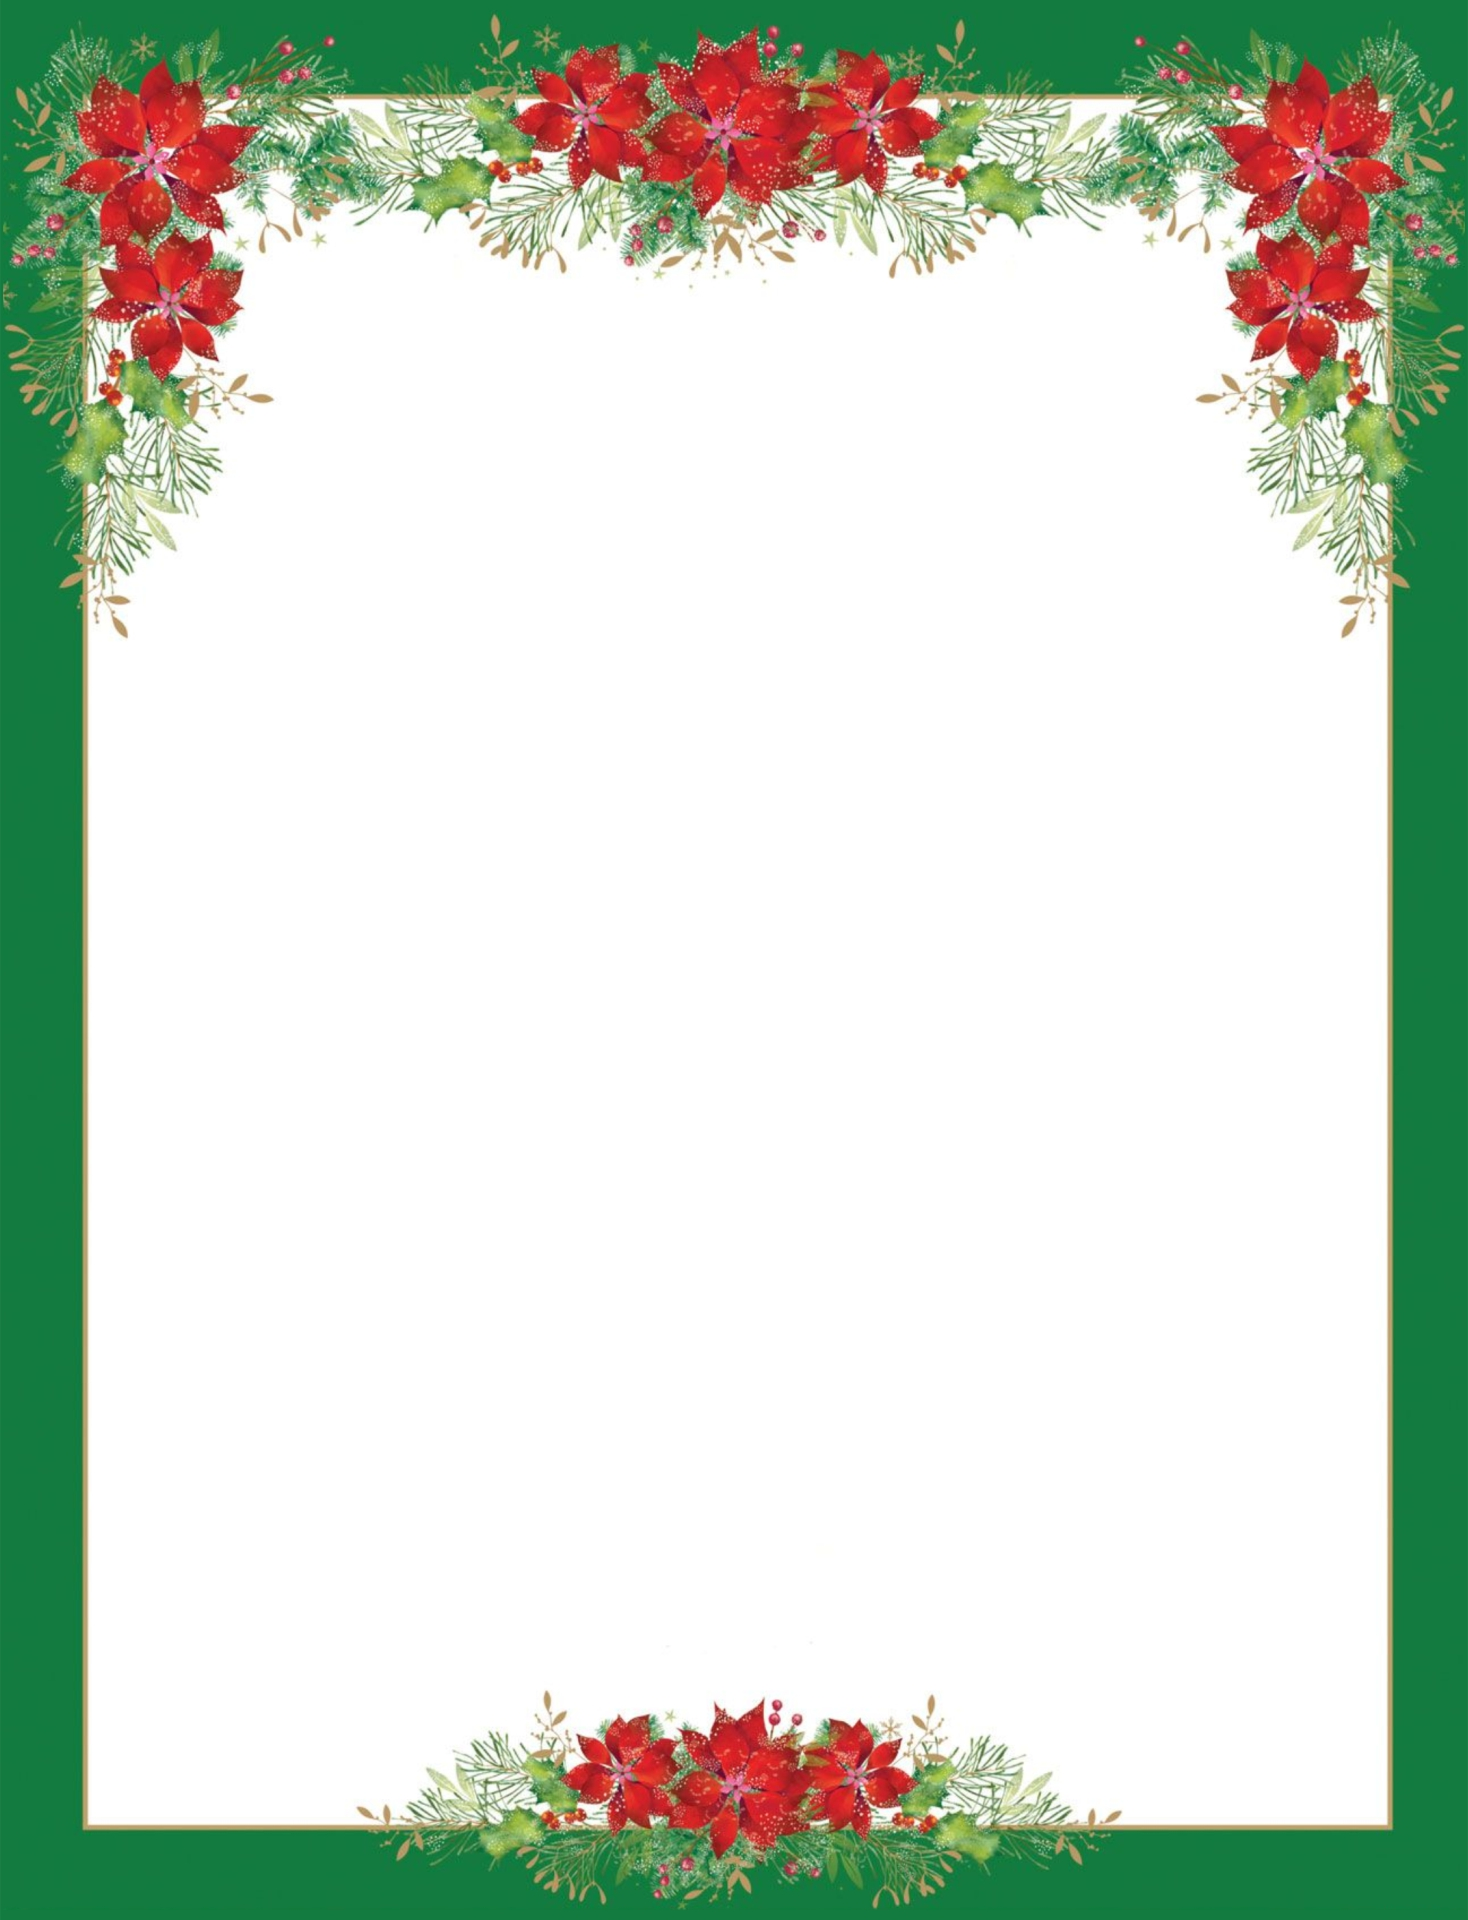 8 Best Images of Printable Christmas Letterhead Paper ...